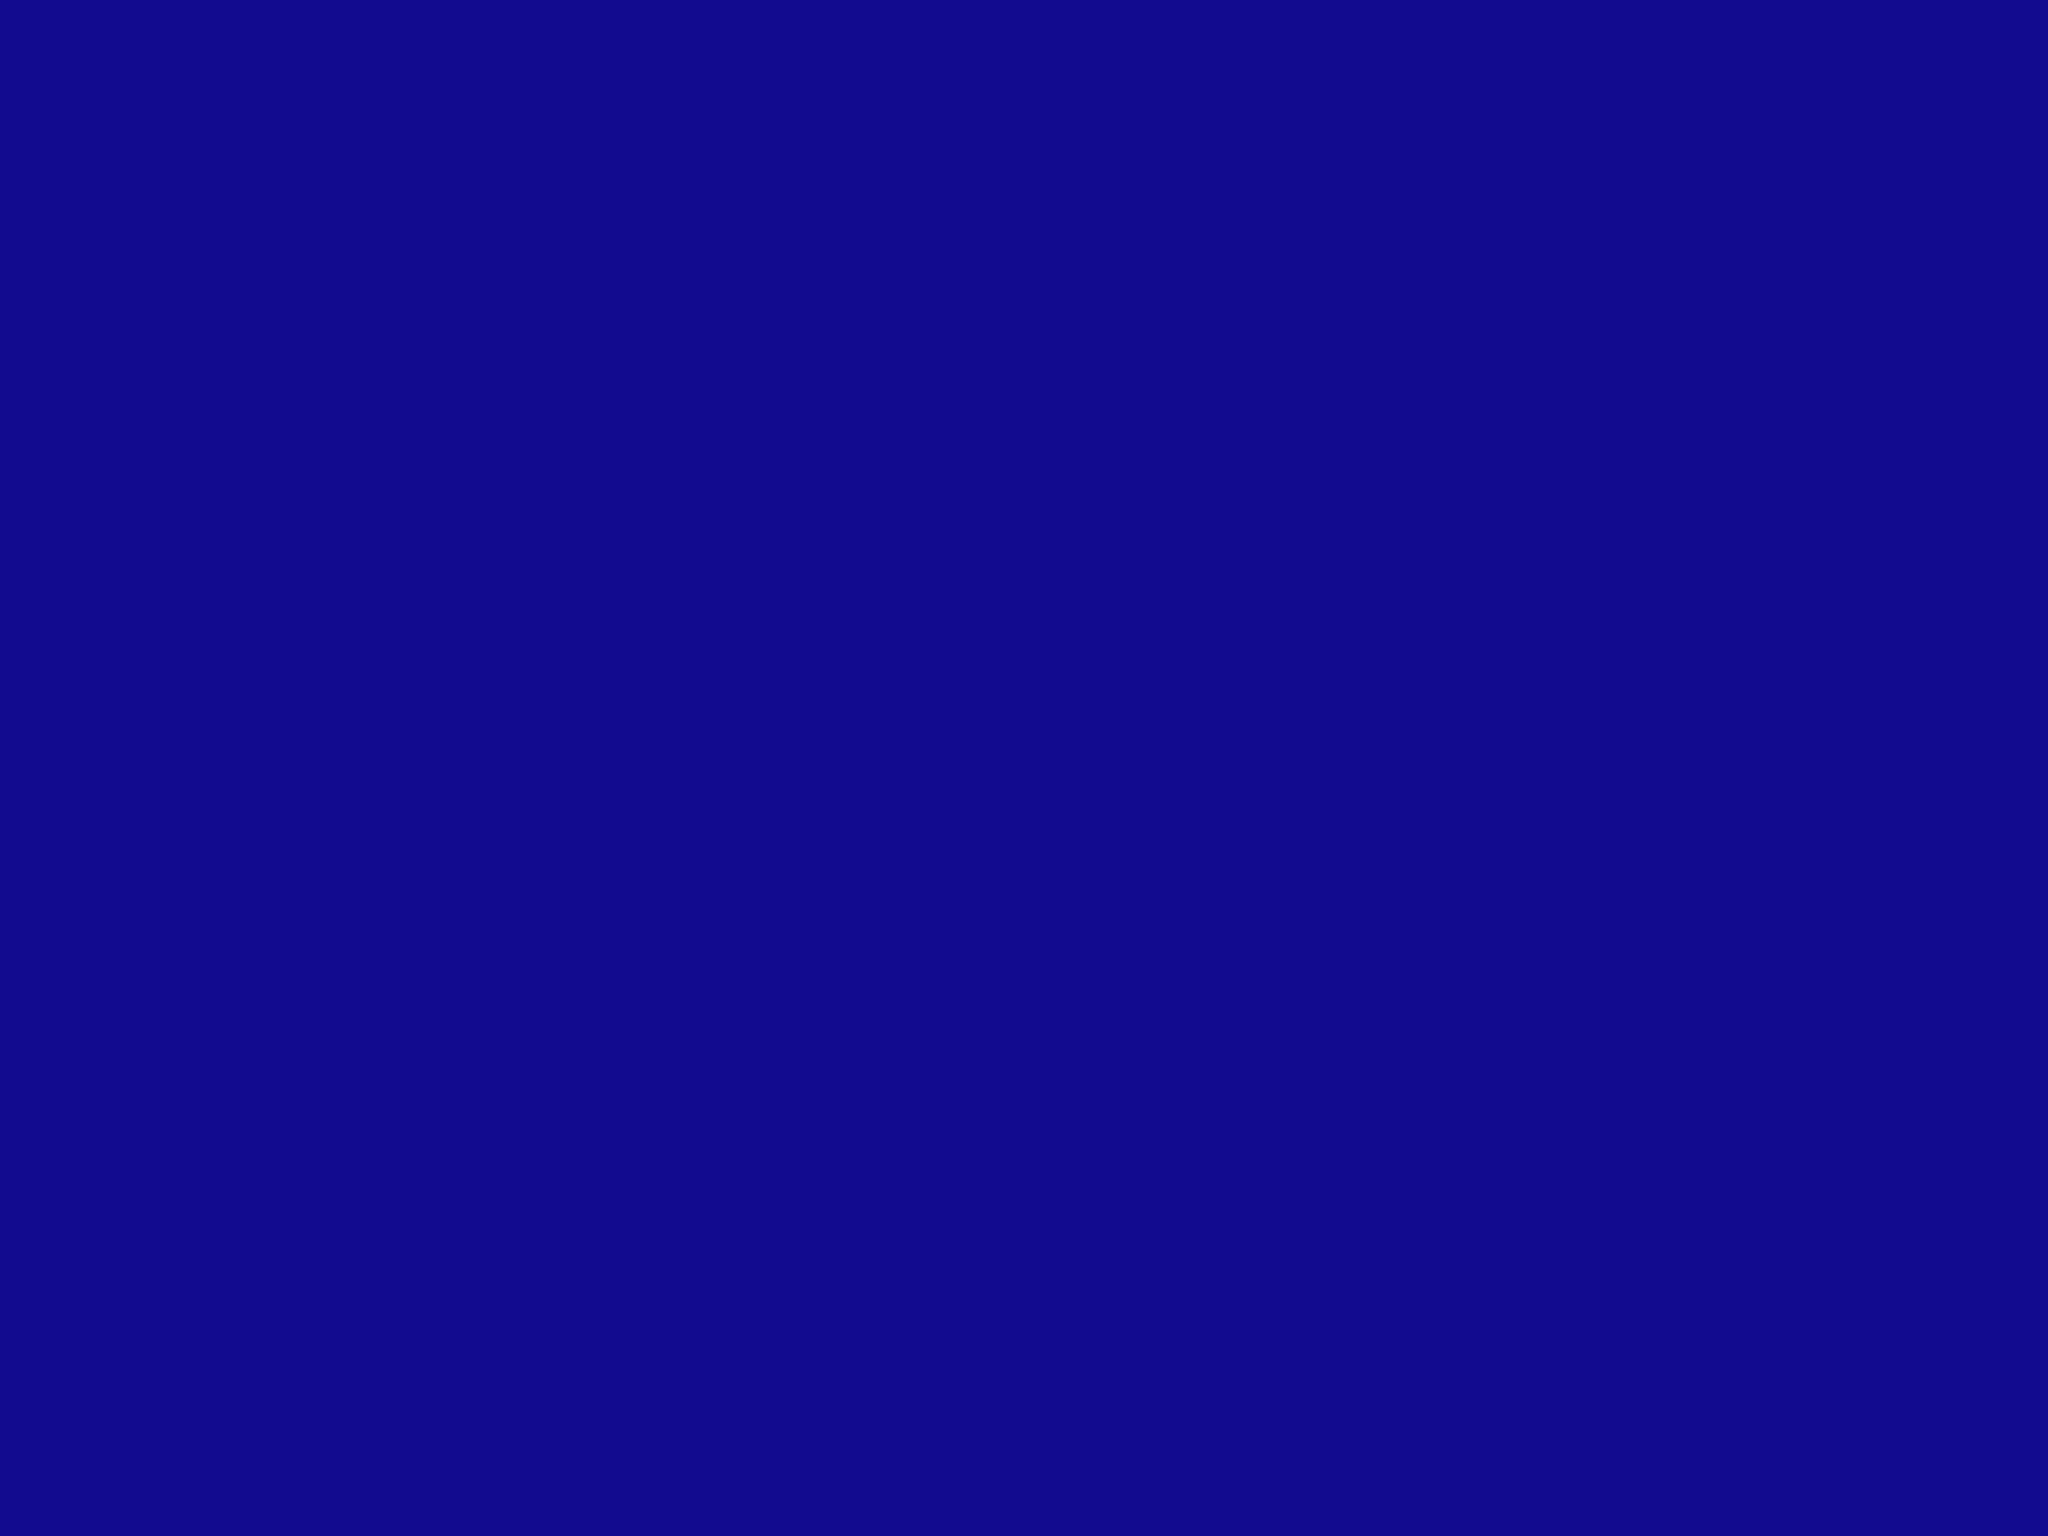 2048x1536 Ultramarine Solid Color Background 2048x1536